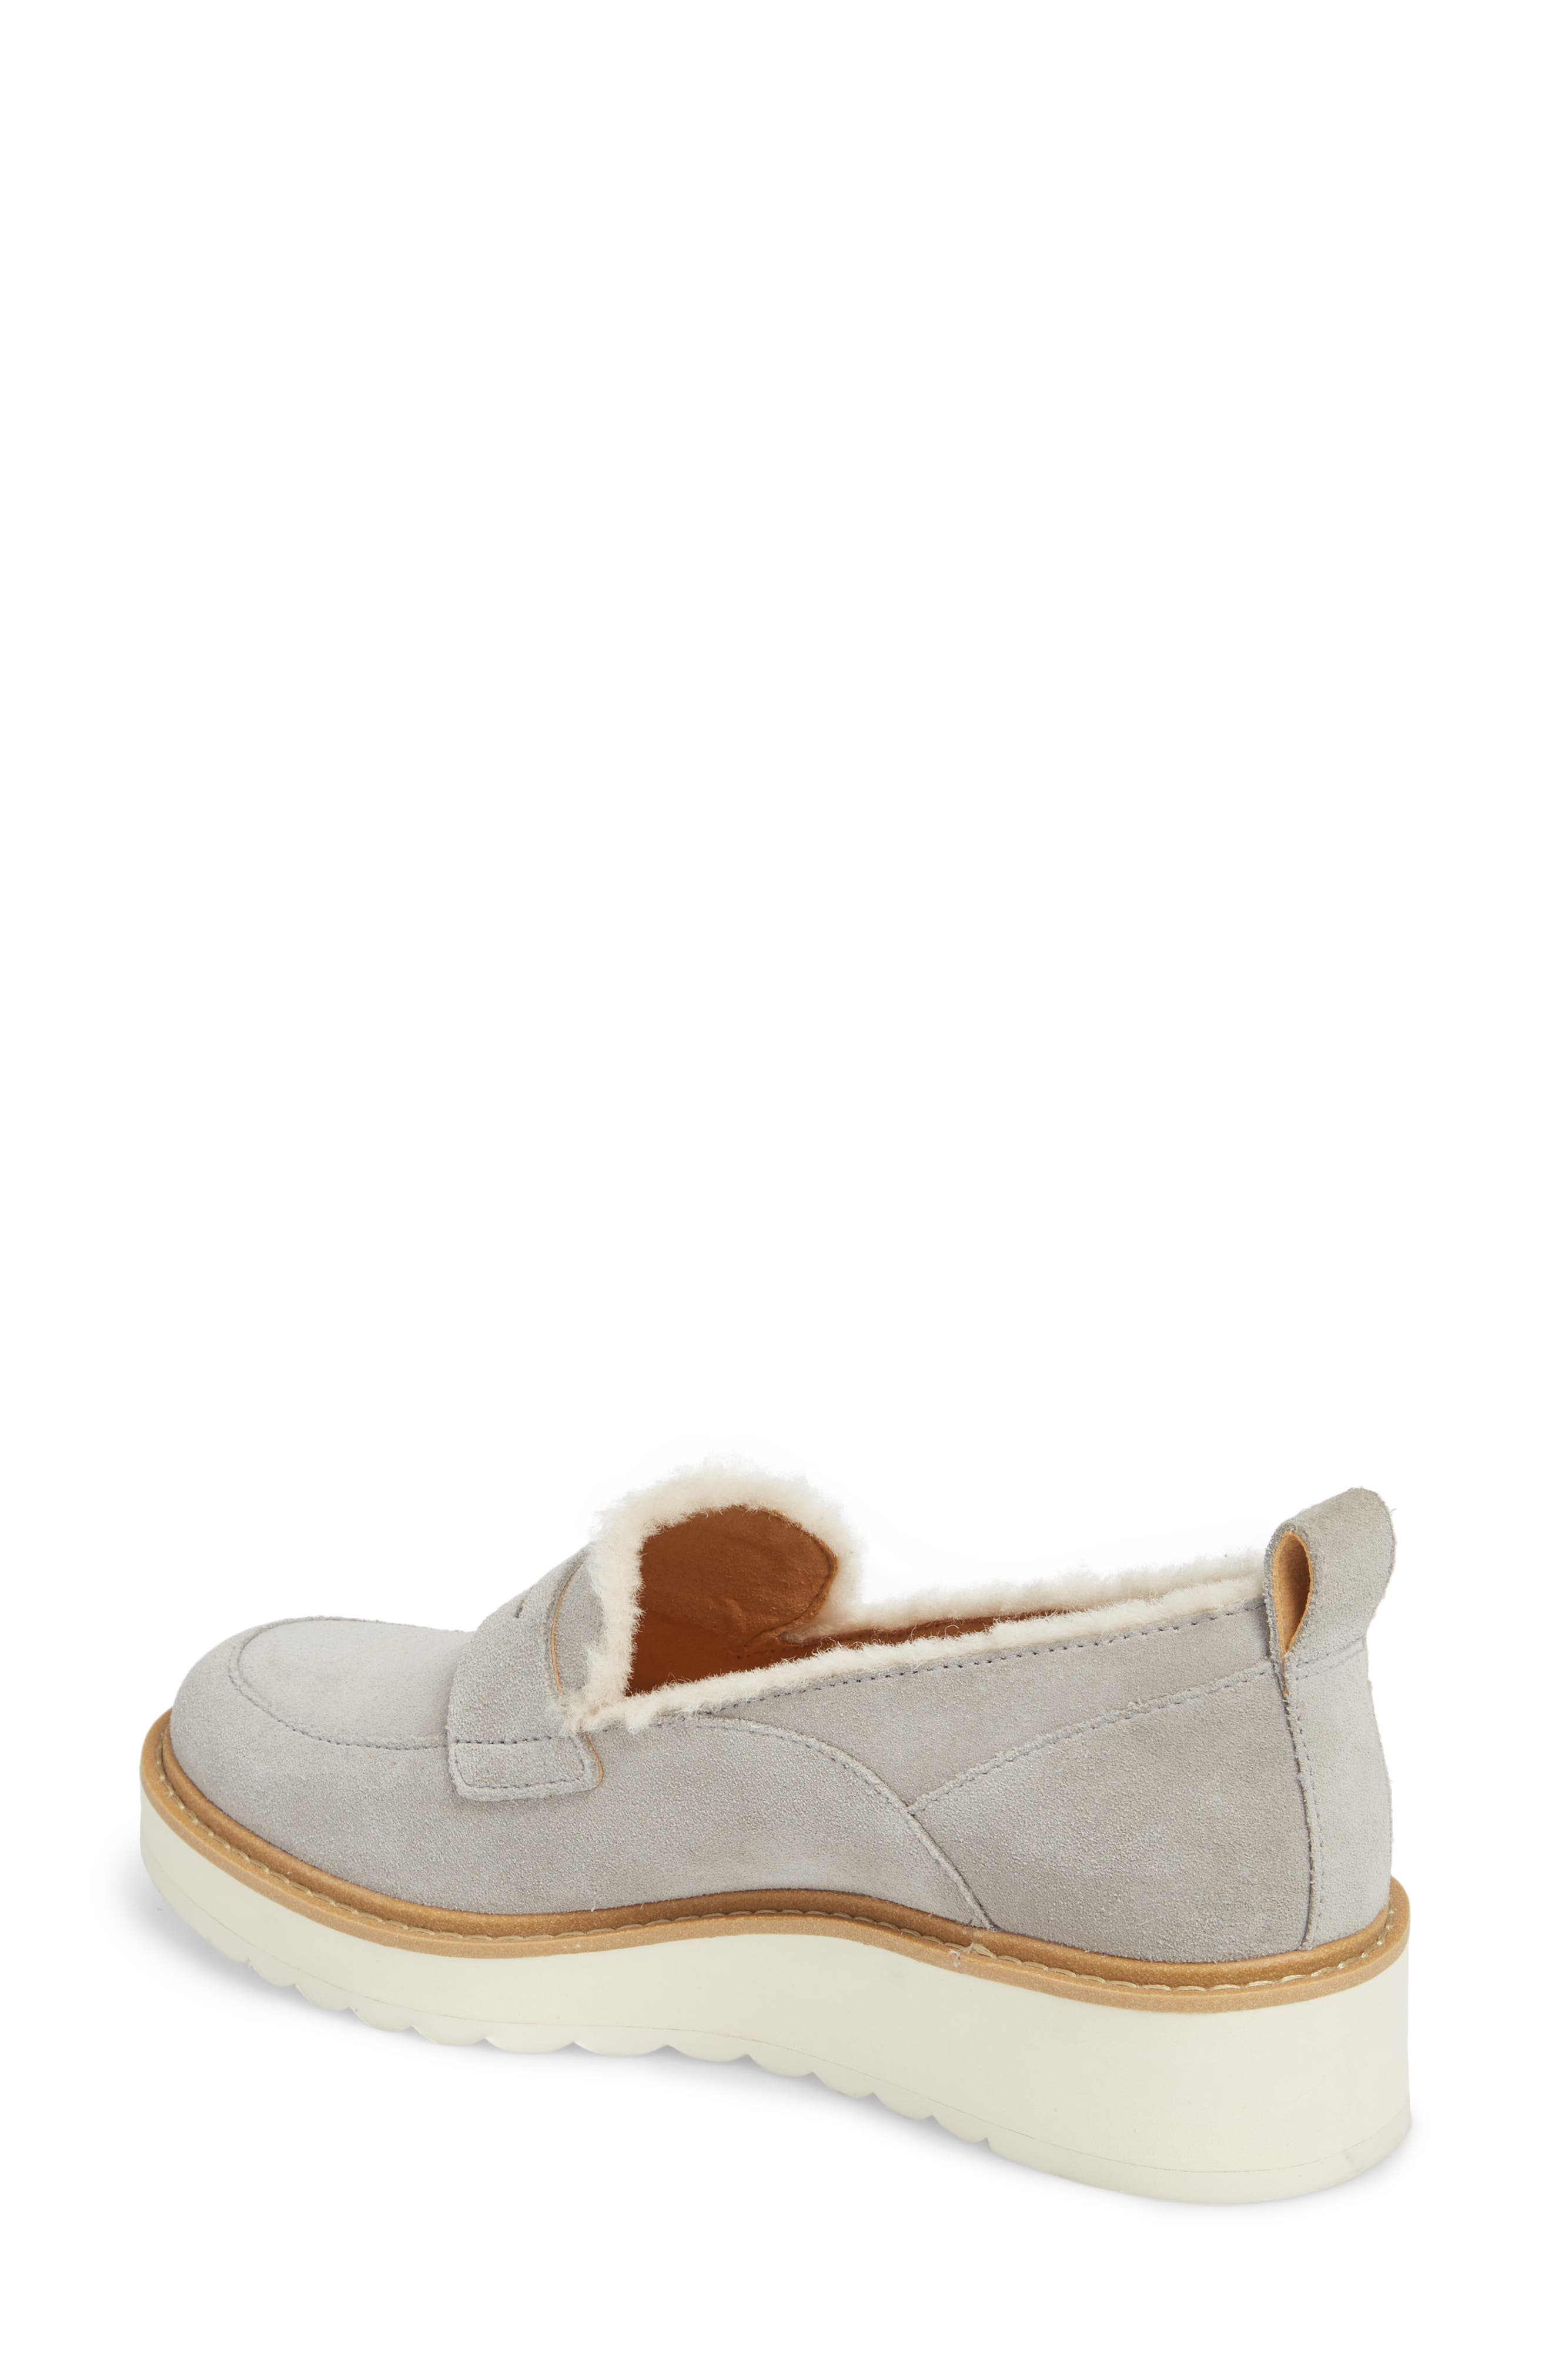 Atwater Spill Seam Wedge Loafer,                             Alternate thumbnail 2, color,                             SEAL LEATHER